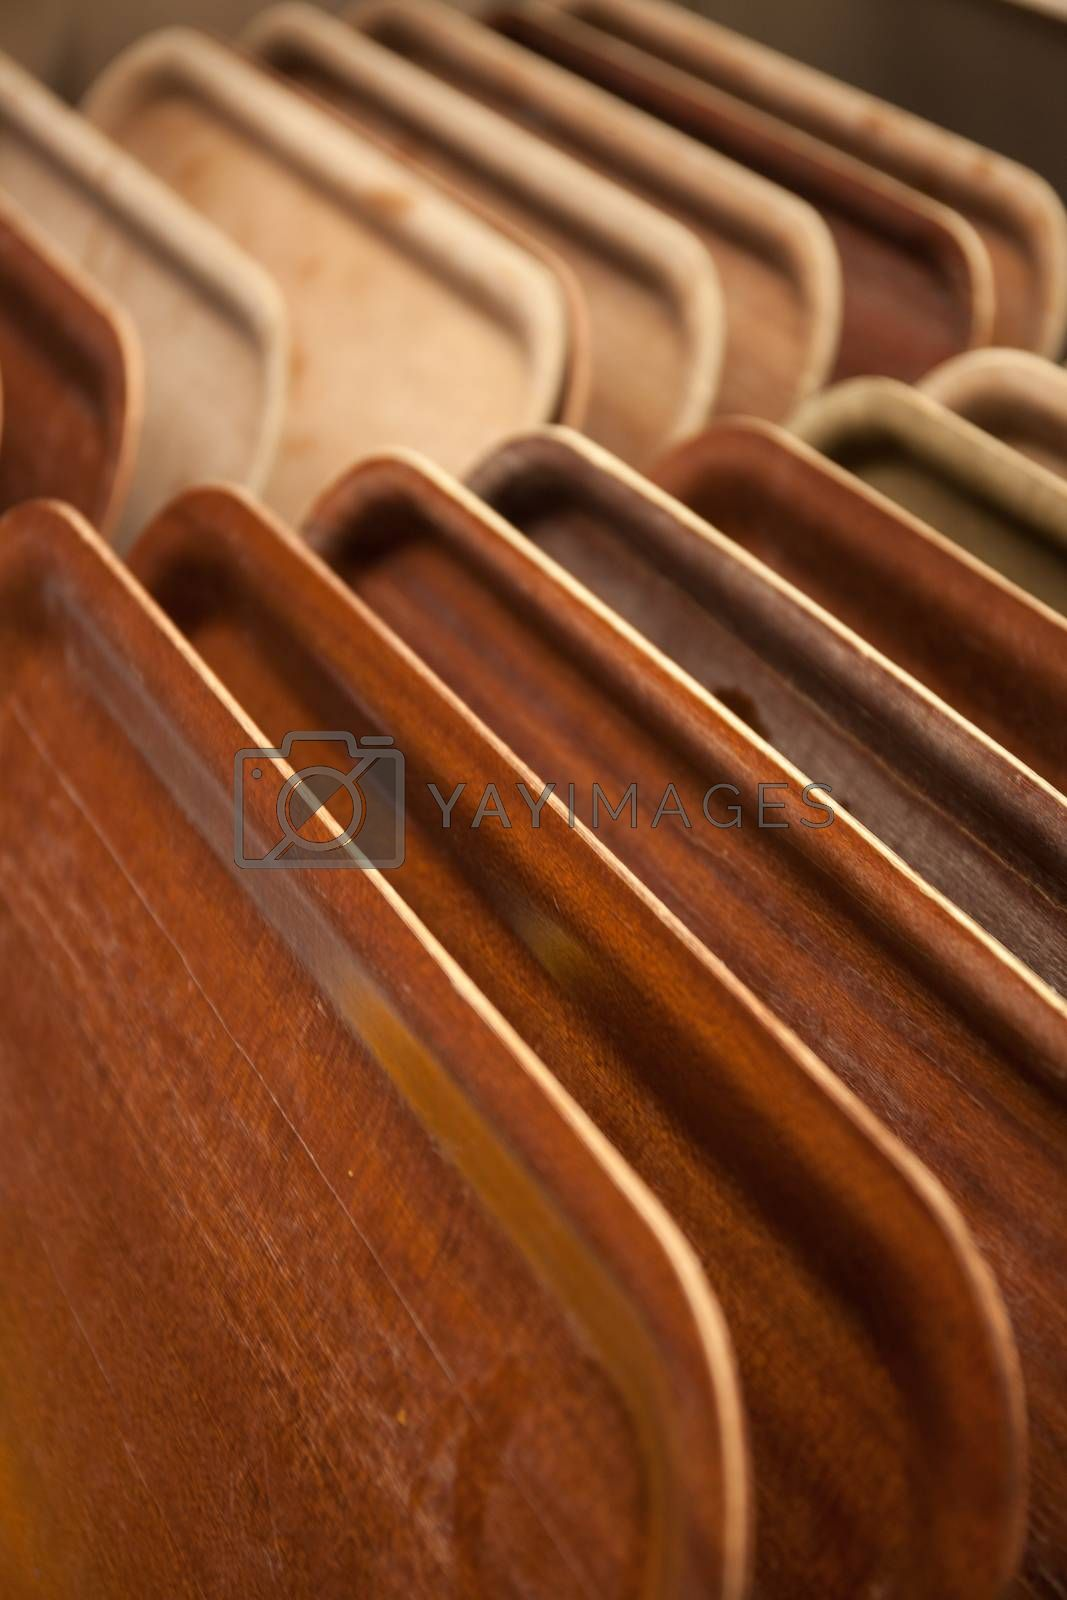 Row of wooden trays used for carrying plates with food in a canteen